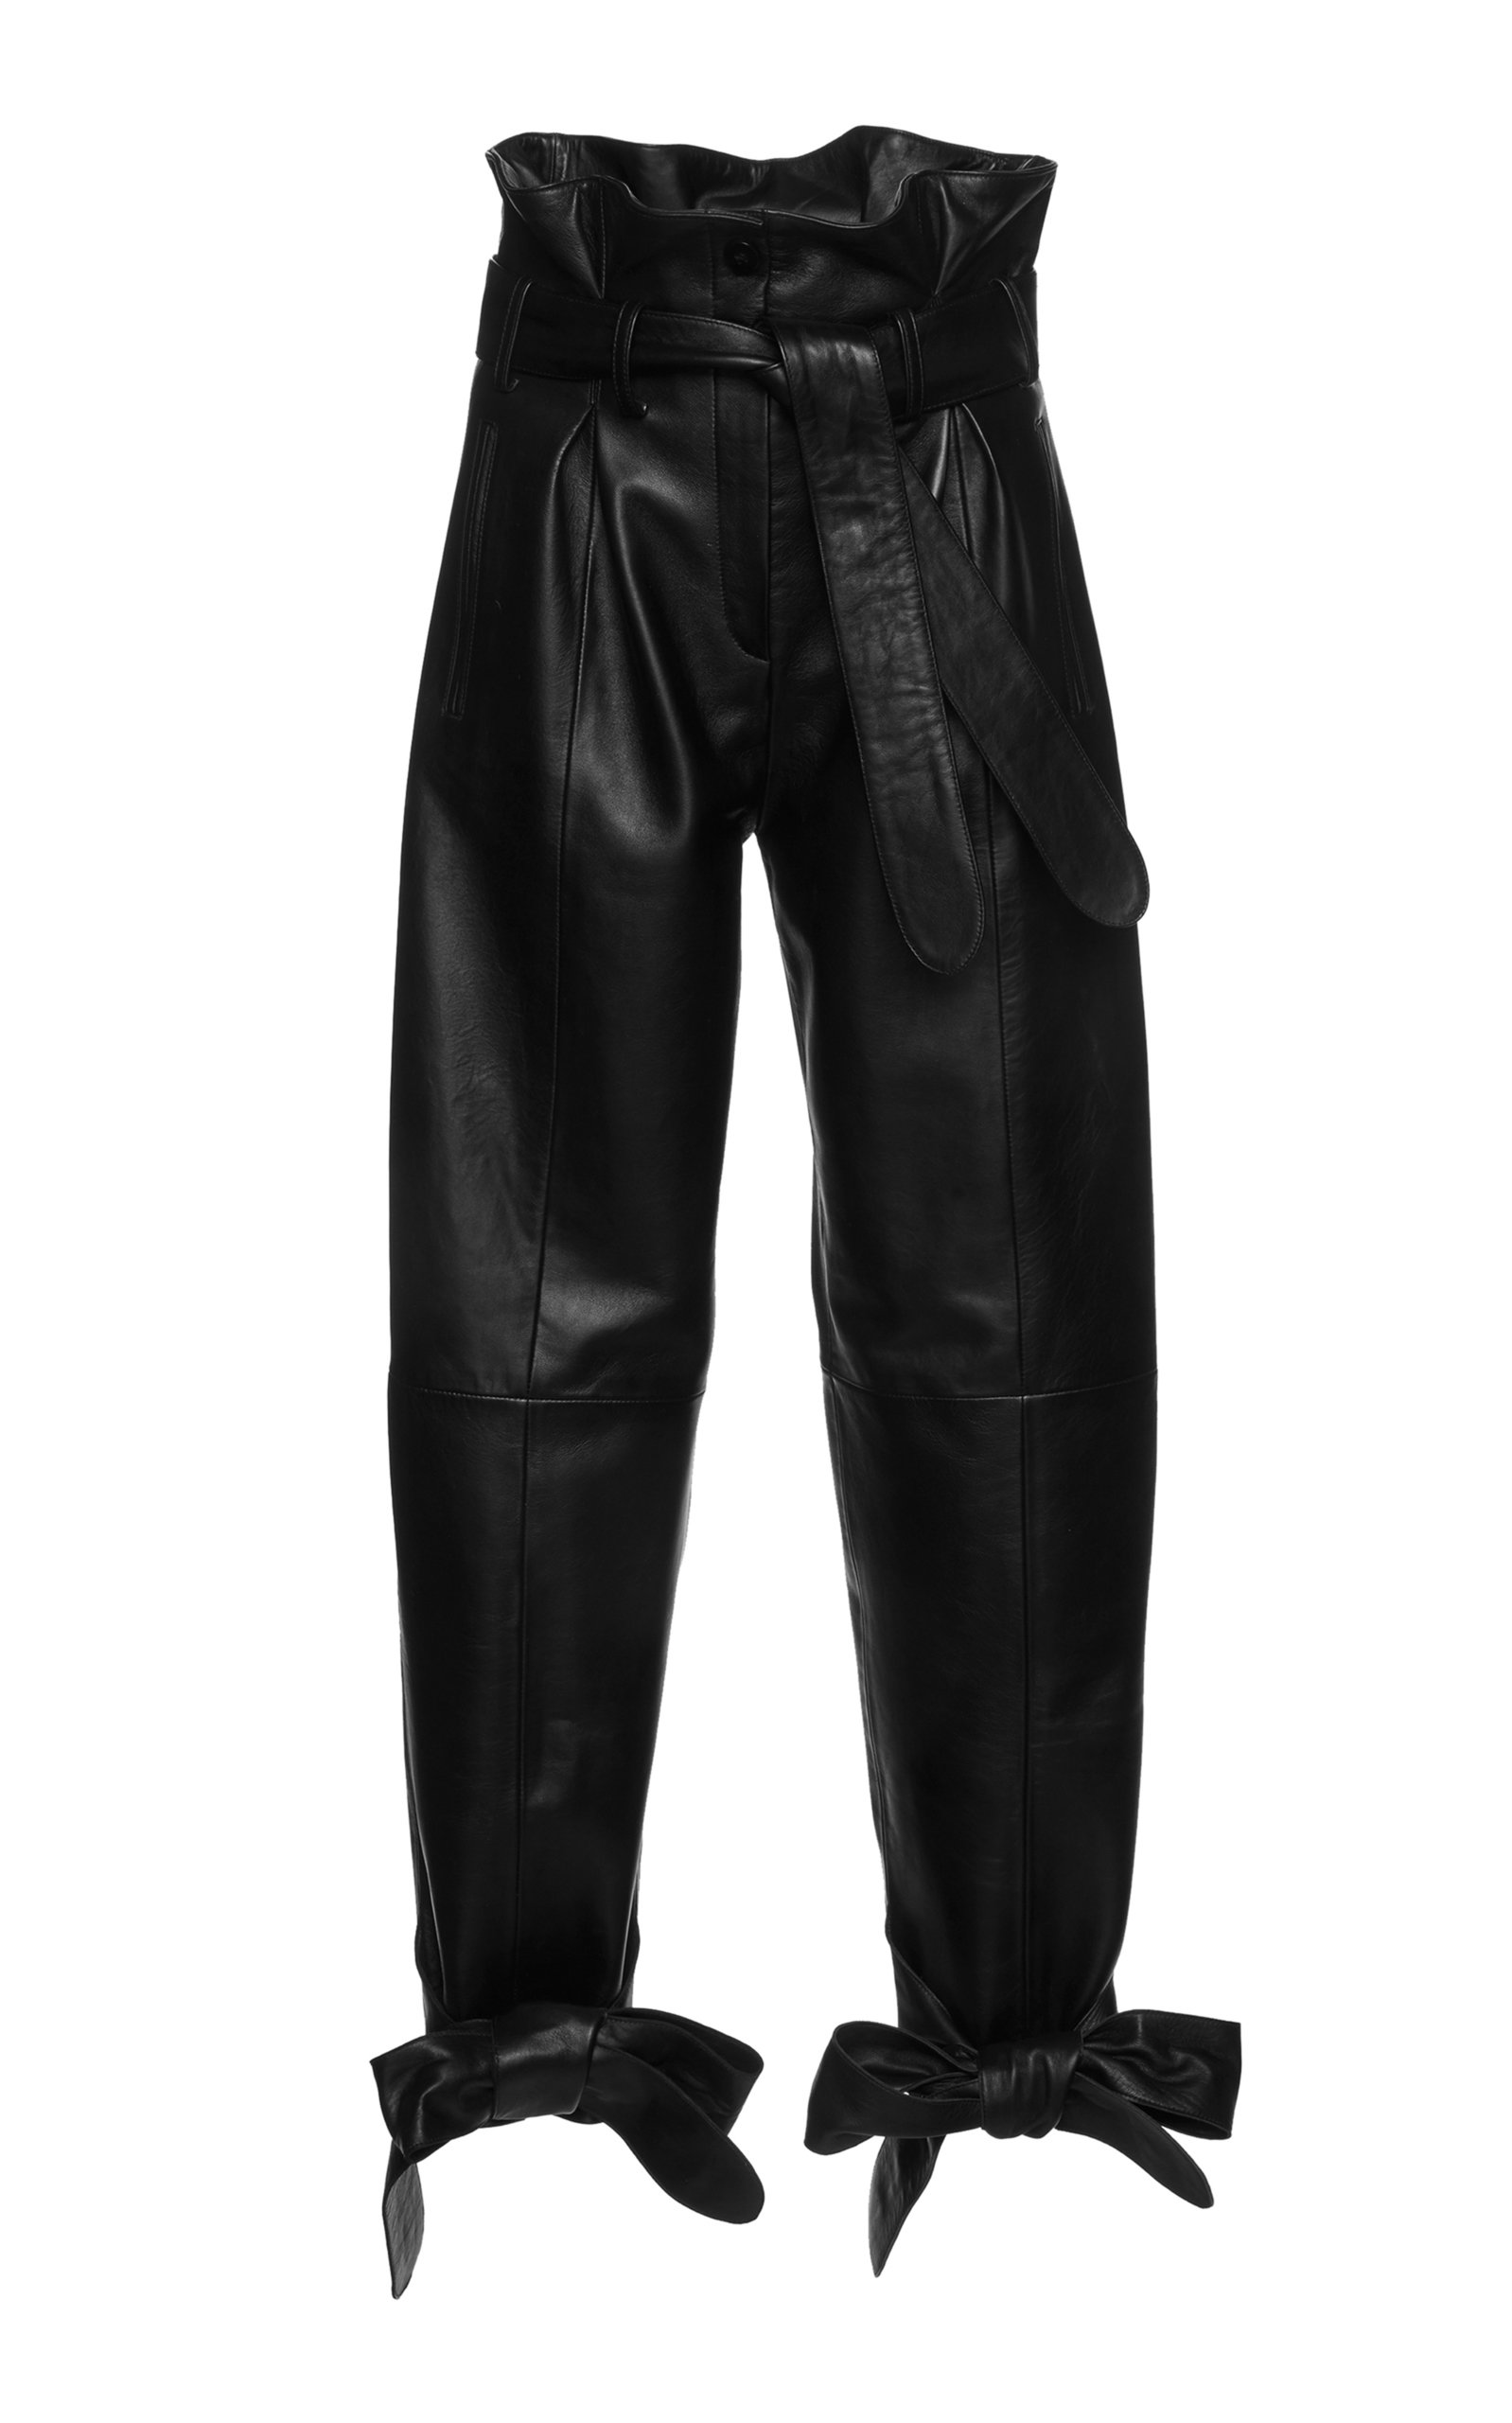 ATTICO Tie-Detailed Belted Leather Straight-Leg Pants in Black